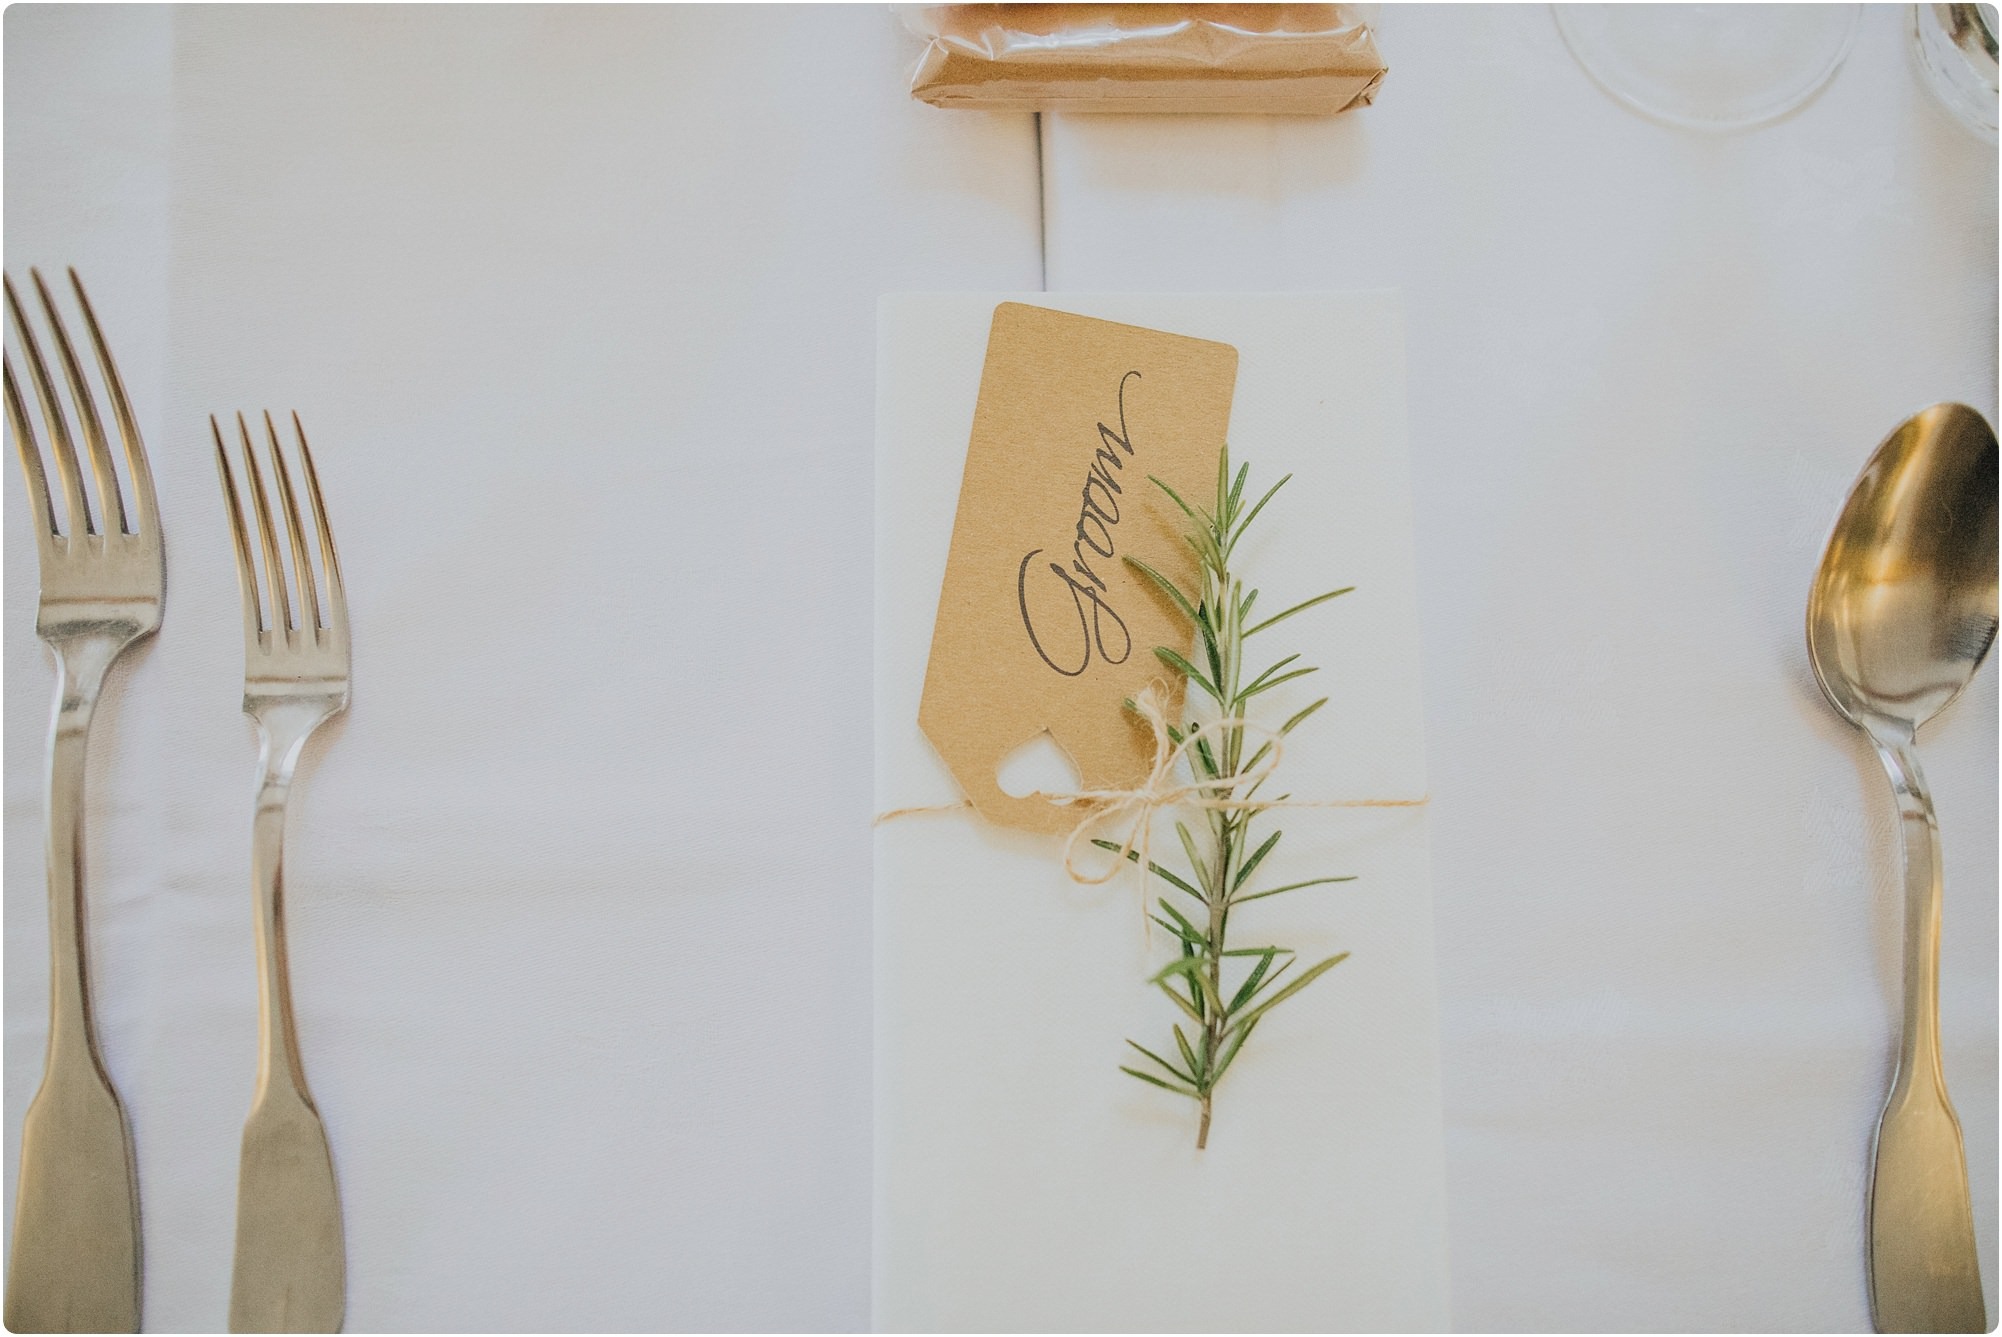 luggage tag name place and rosemary for rustic decor at a Cripps Barn Winter Wedding